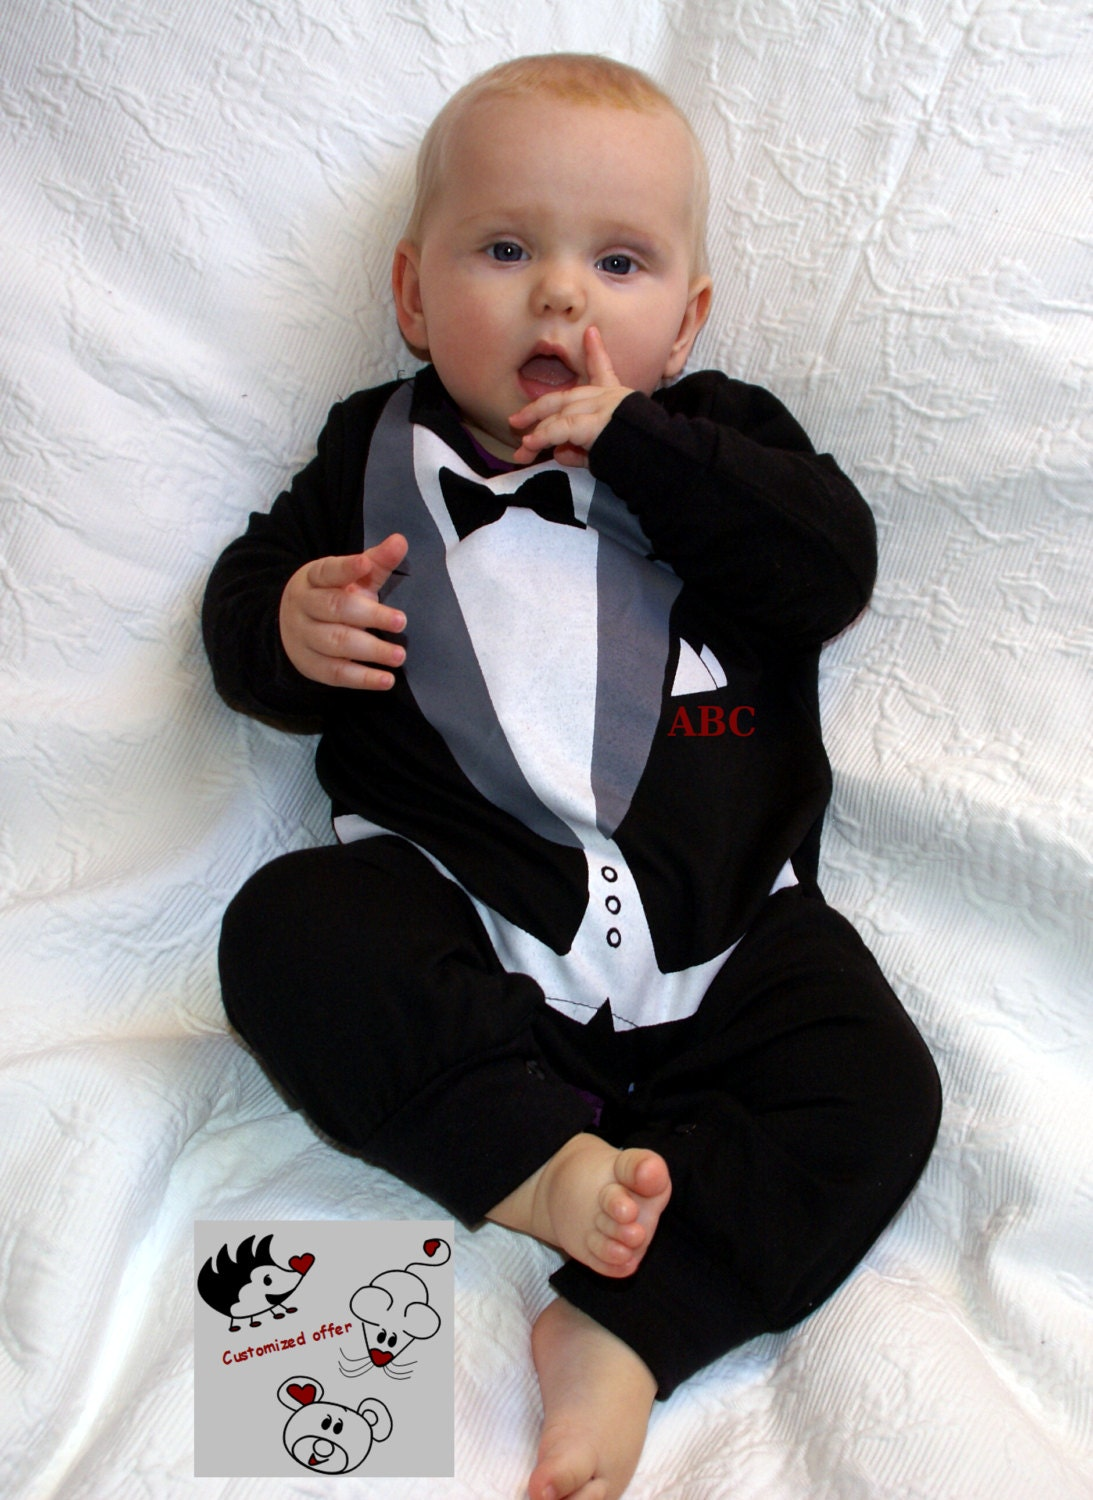 Tux Baby Bodysuits are perfect for Baby! Ultra soft % cotton bodysuits are the perfect gift for newborn birthdays, Mother's Day, baby showers or any occasion.